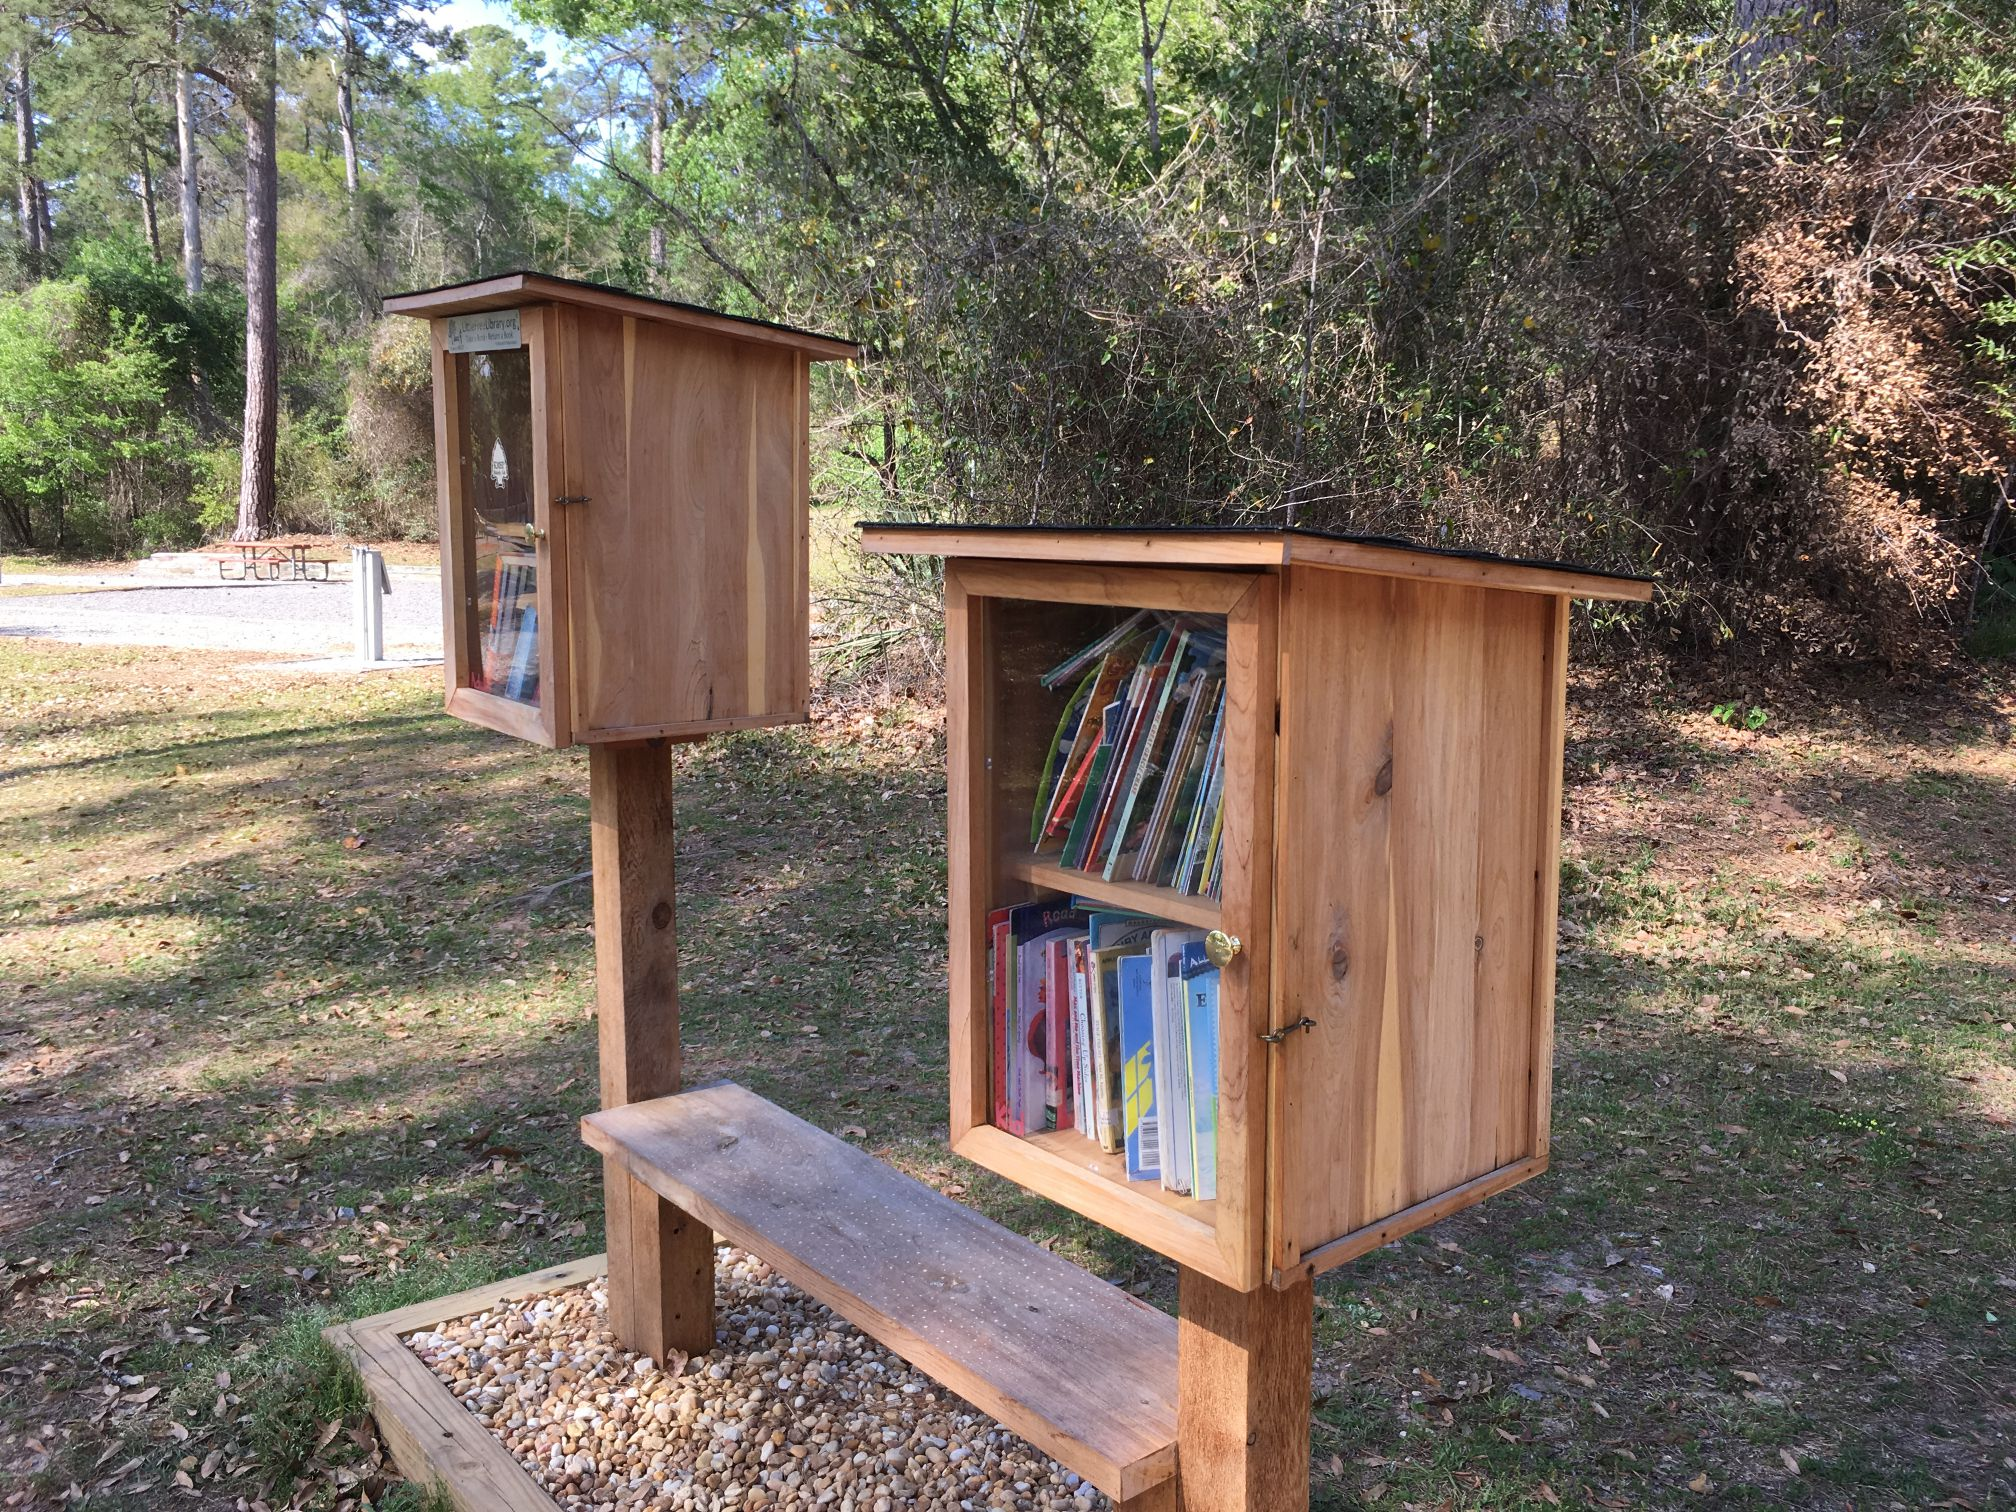 Little free lending libraries at Kolomoki State Park